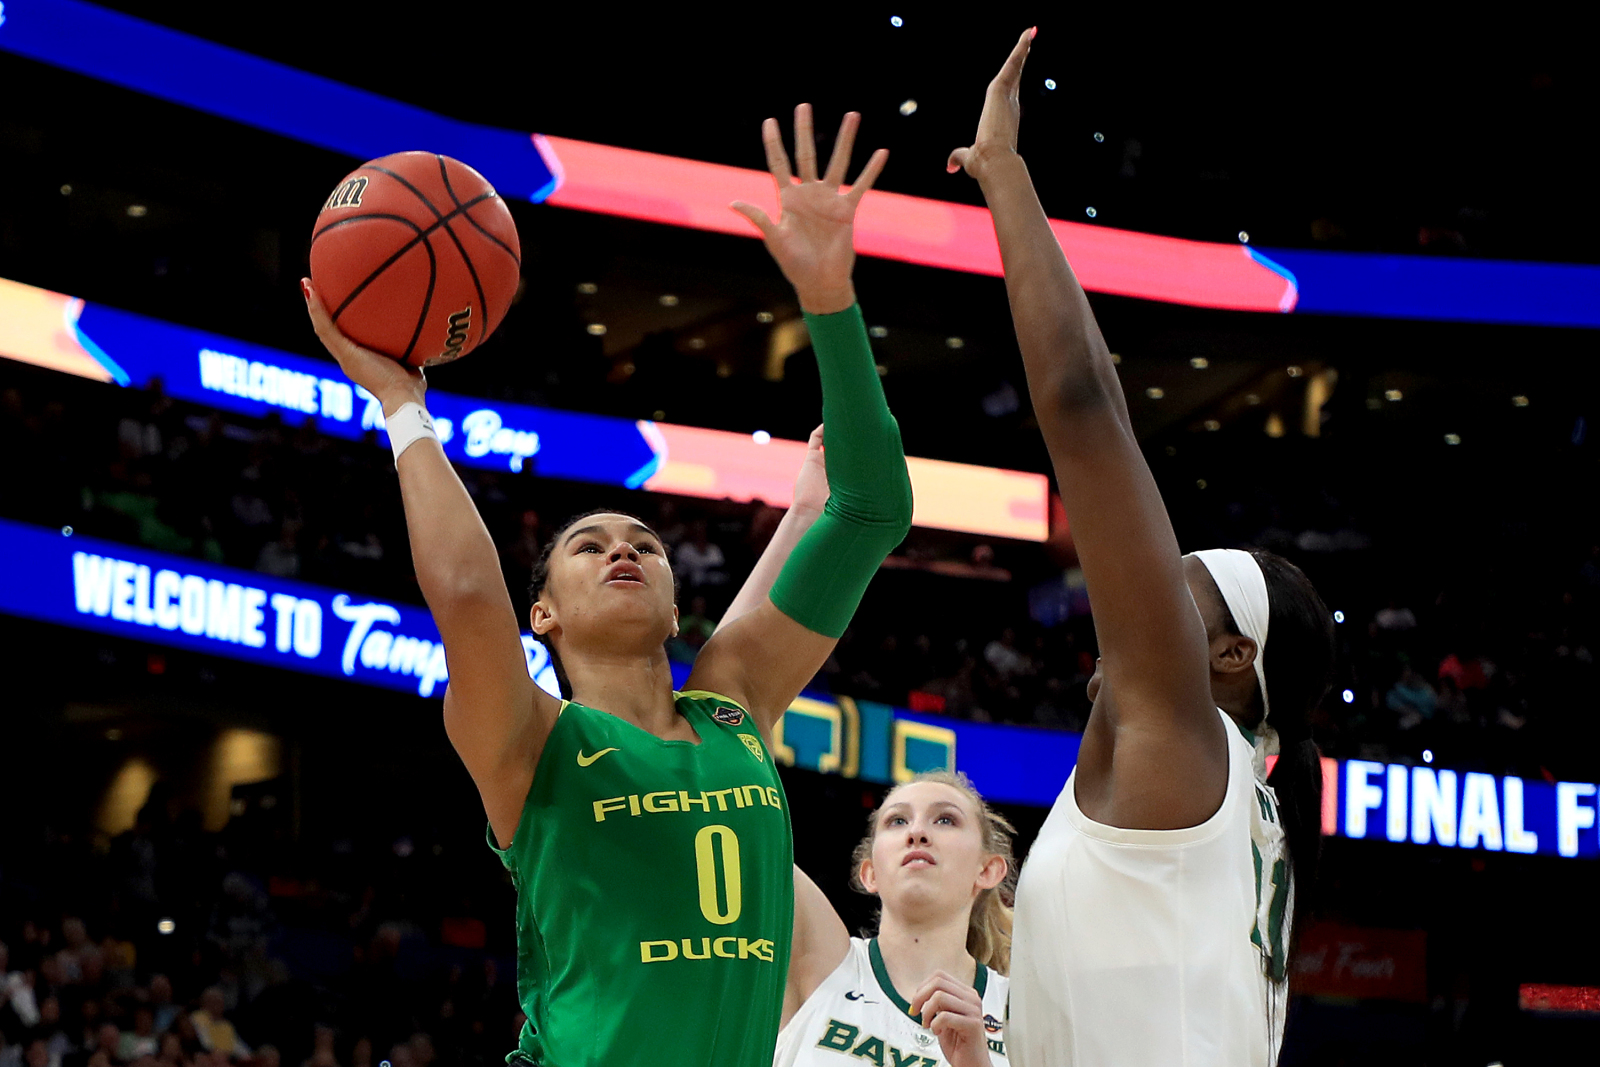 What Satou Sabally declaring means for the 2020 WNBA Draft